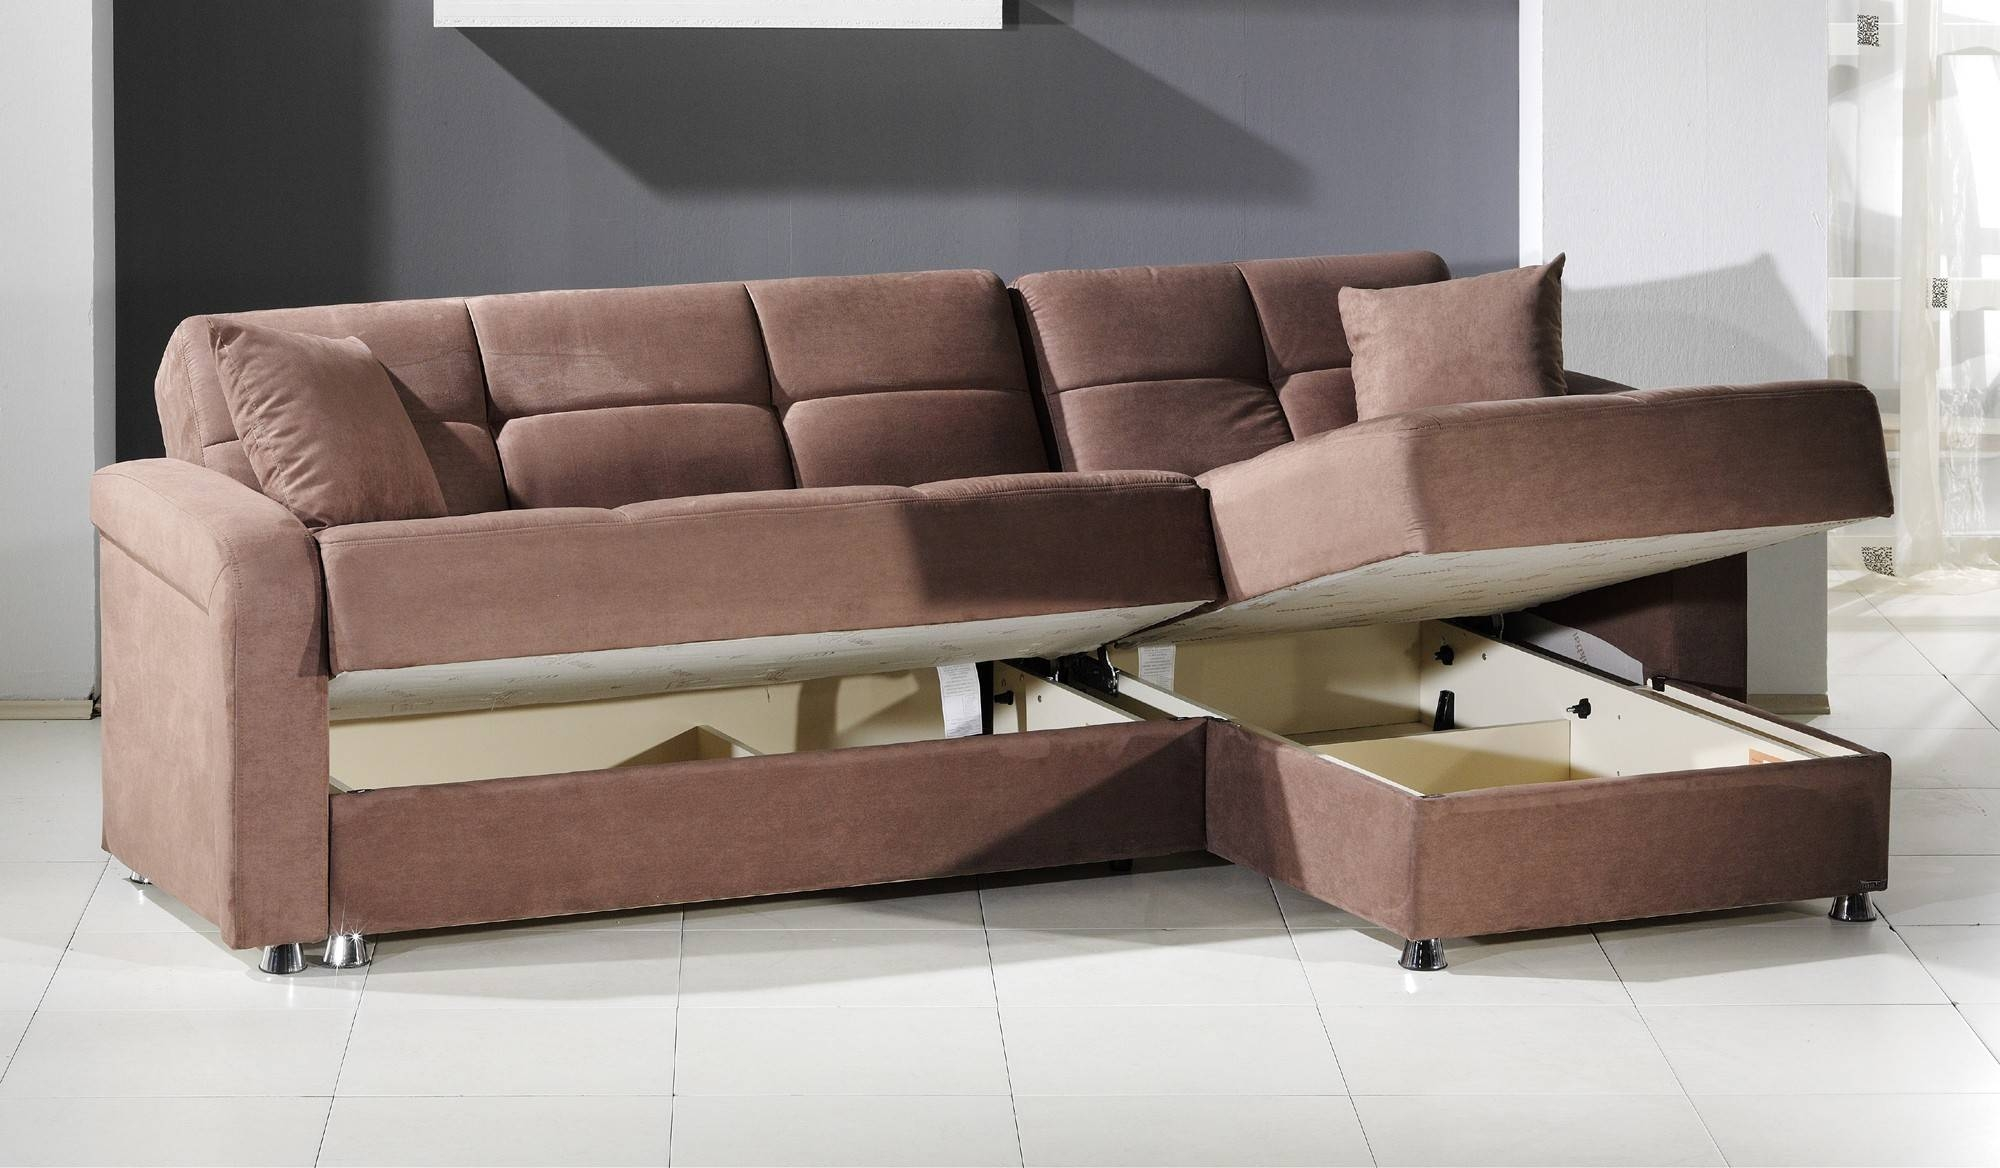 Tan Microfiber Sleeper Sofa | Centerfieldbar pertaining to Microsuede Sleeper Sofas (Image 15 of 15)